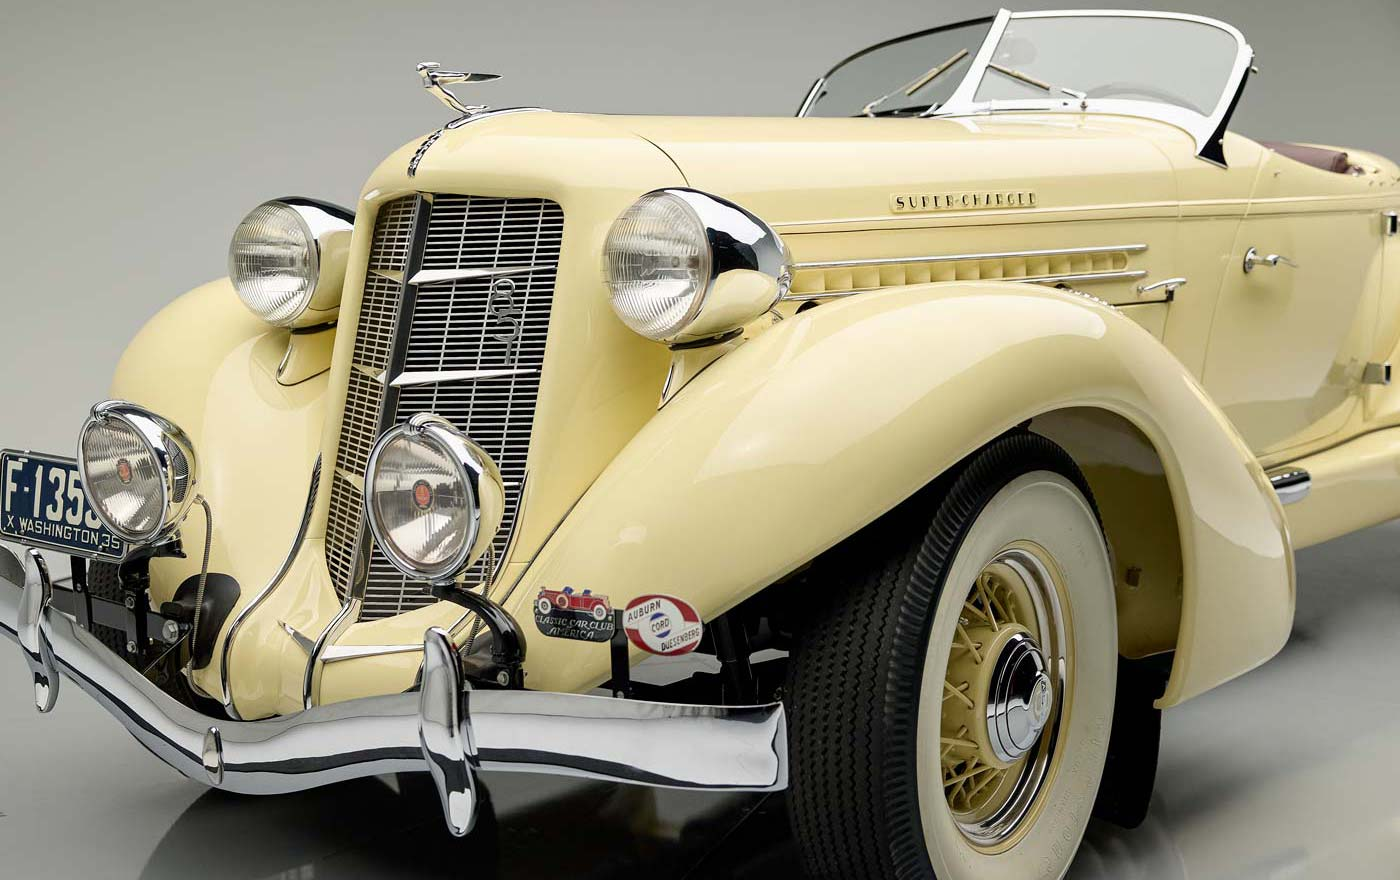 1935 Auburn Supercharged - The JBS Collection Blog